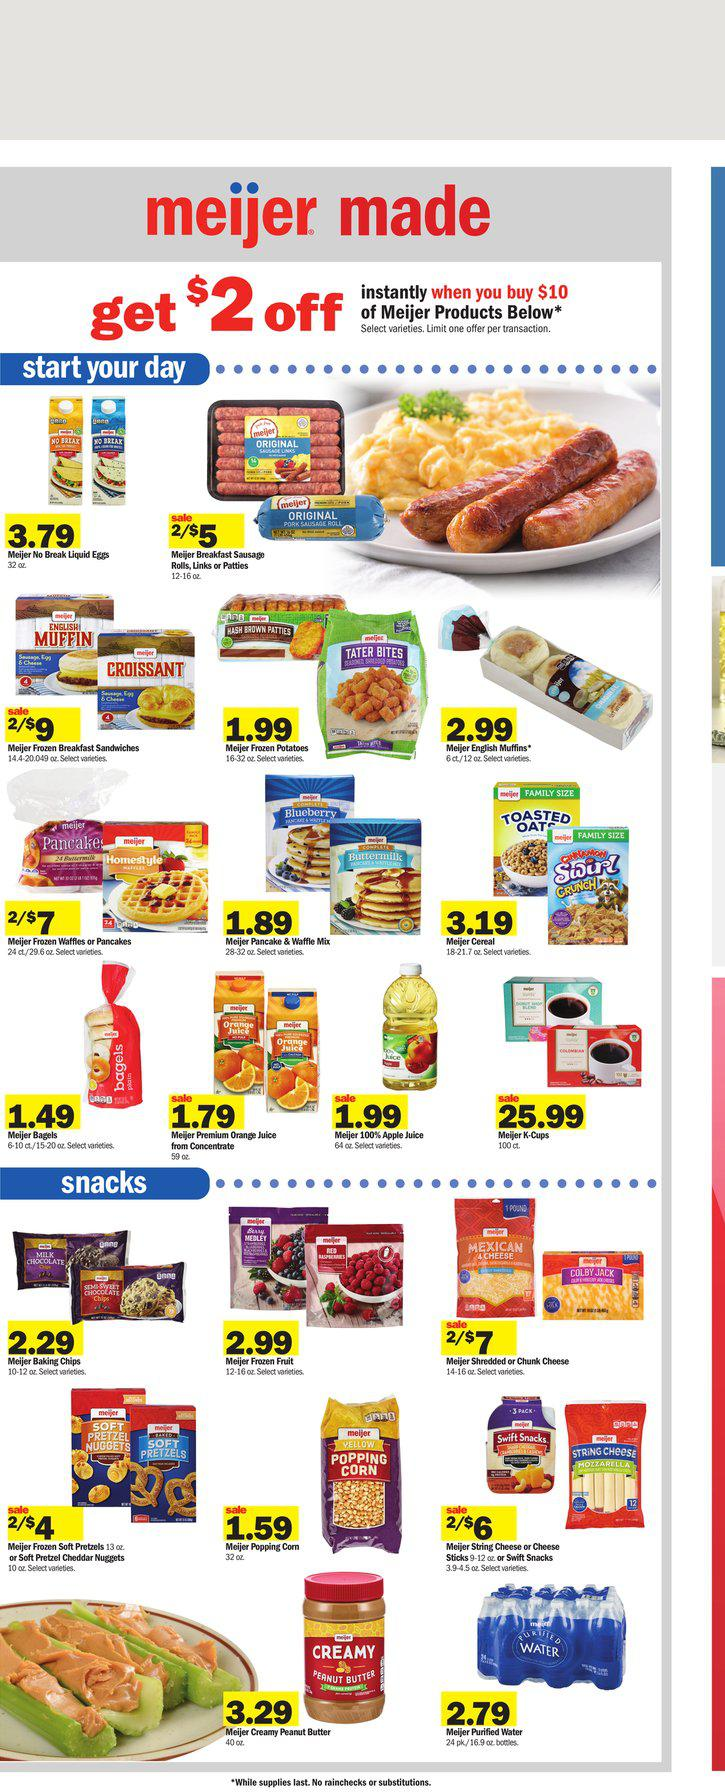 21.02.2021 Meijer ad 10. page